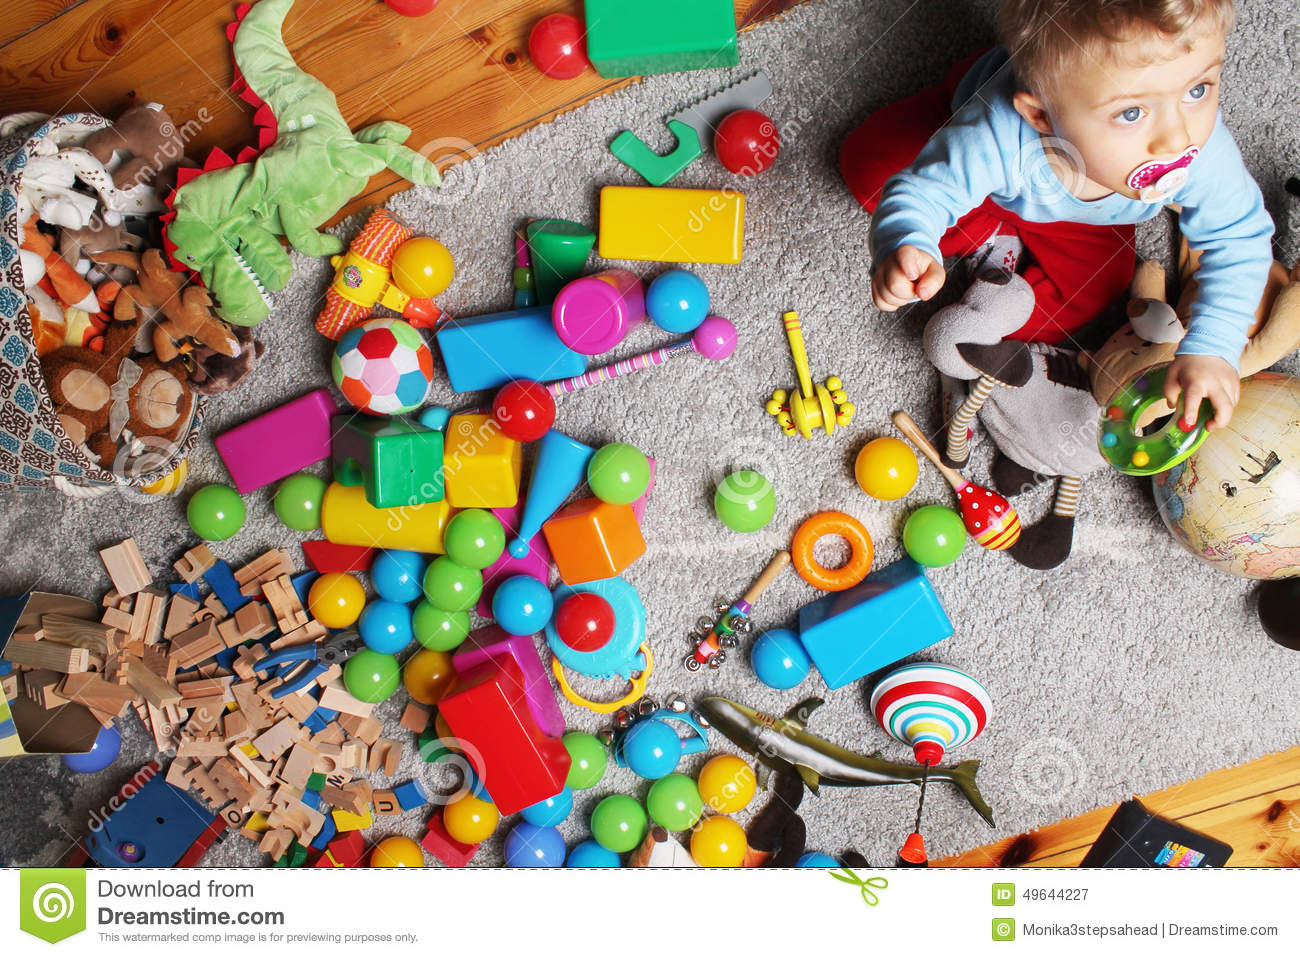 Baby Boy Playing With His Toys On The Floor Stock Photo - Image ... Best Friends Holding Hands Girls